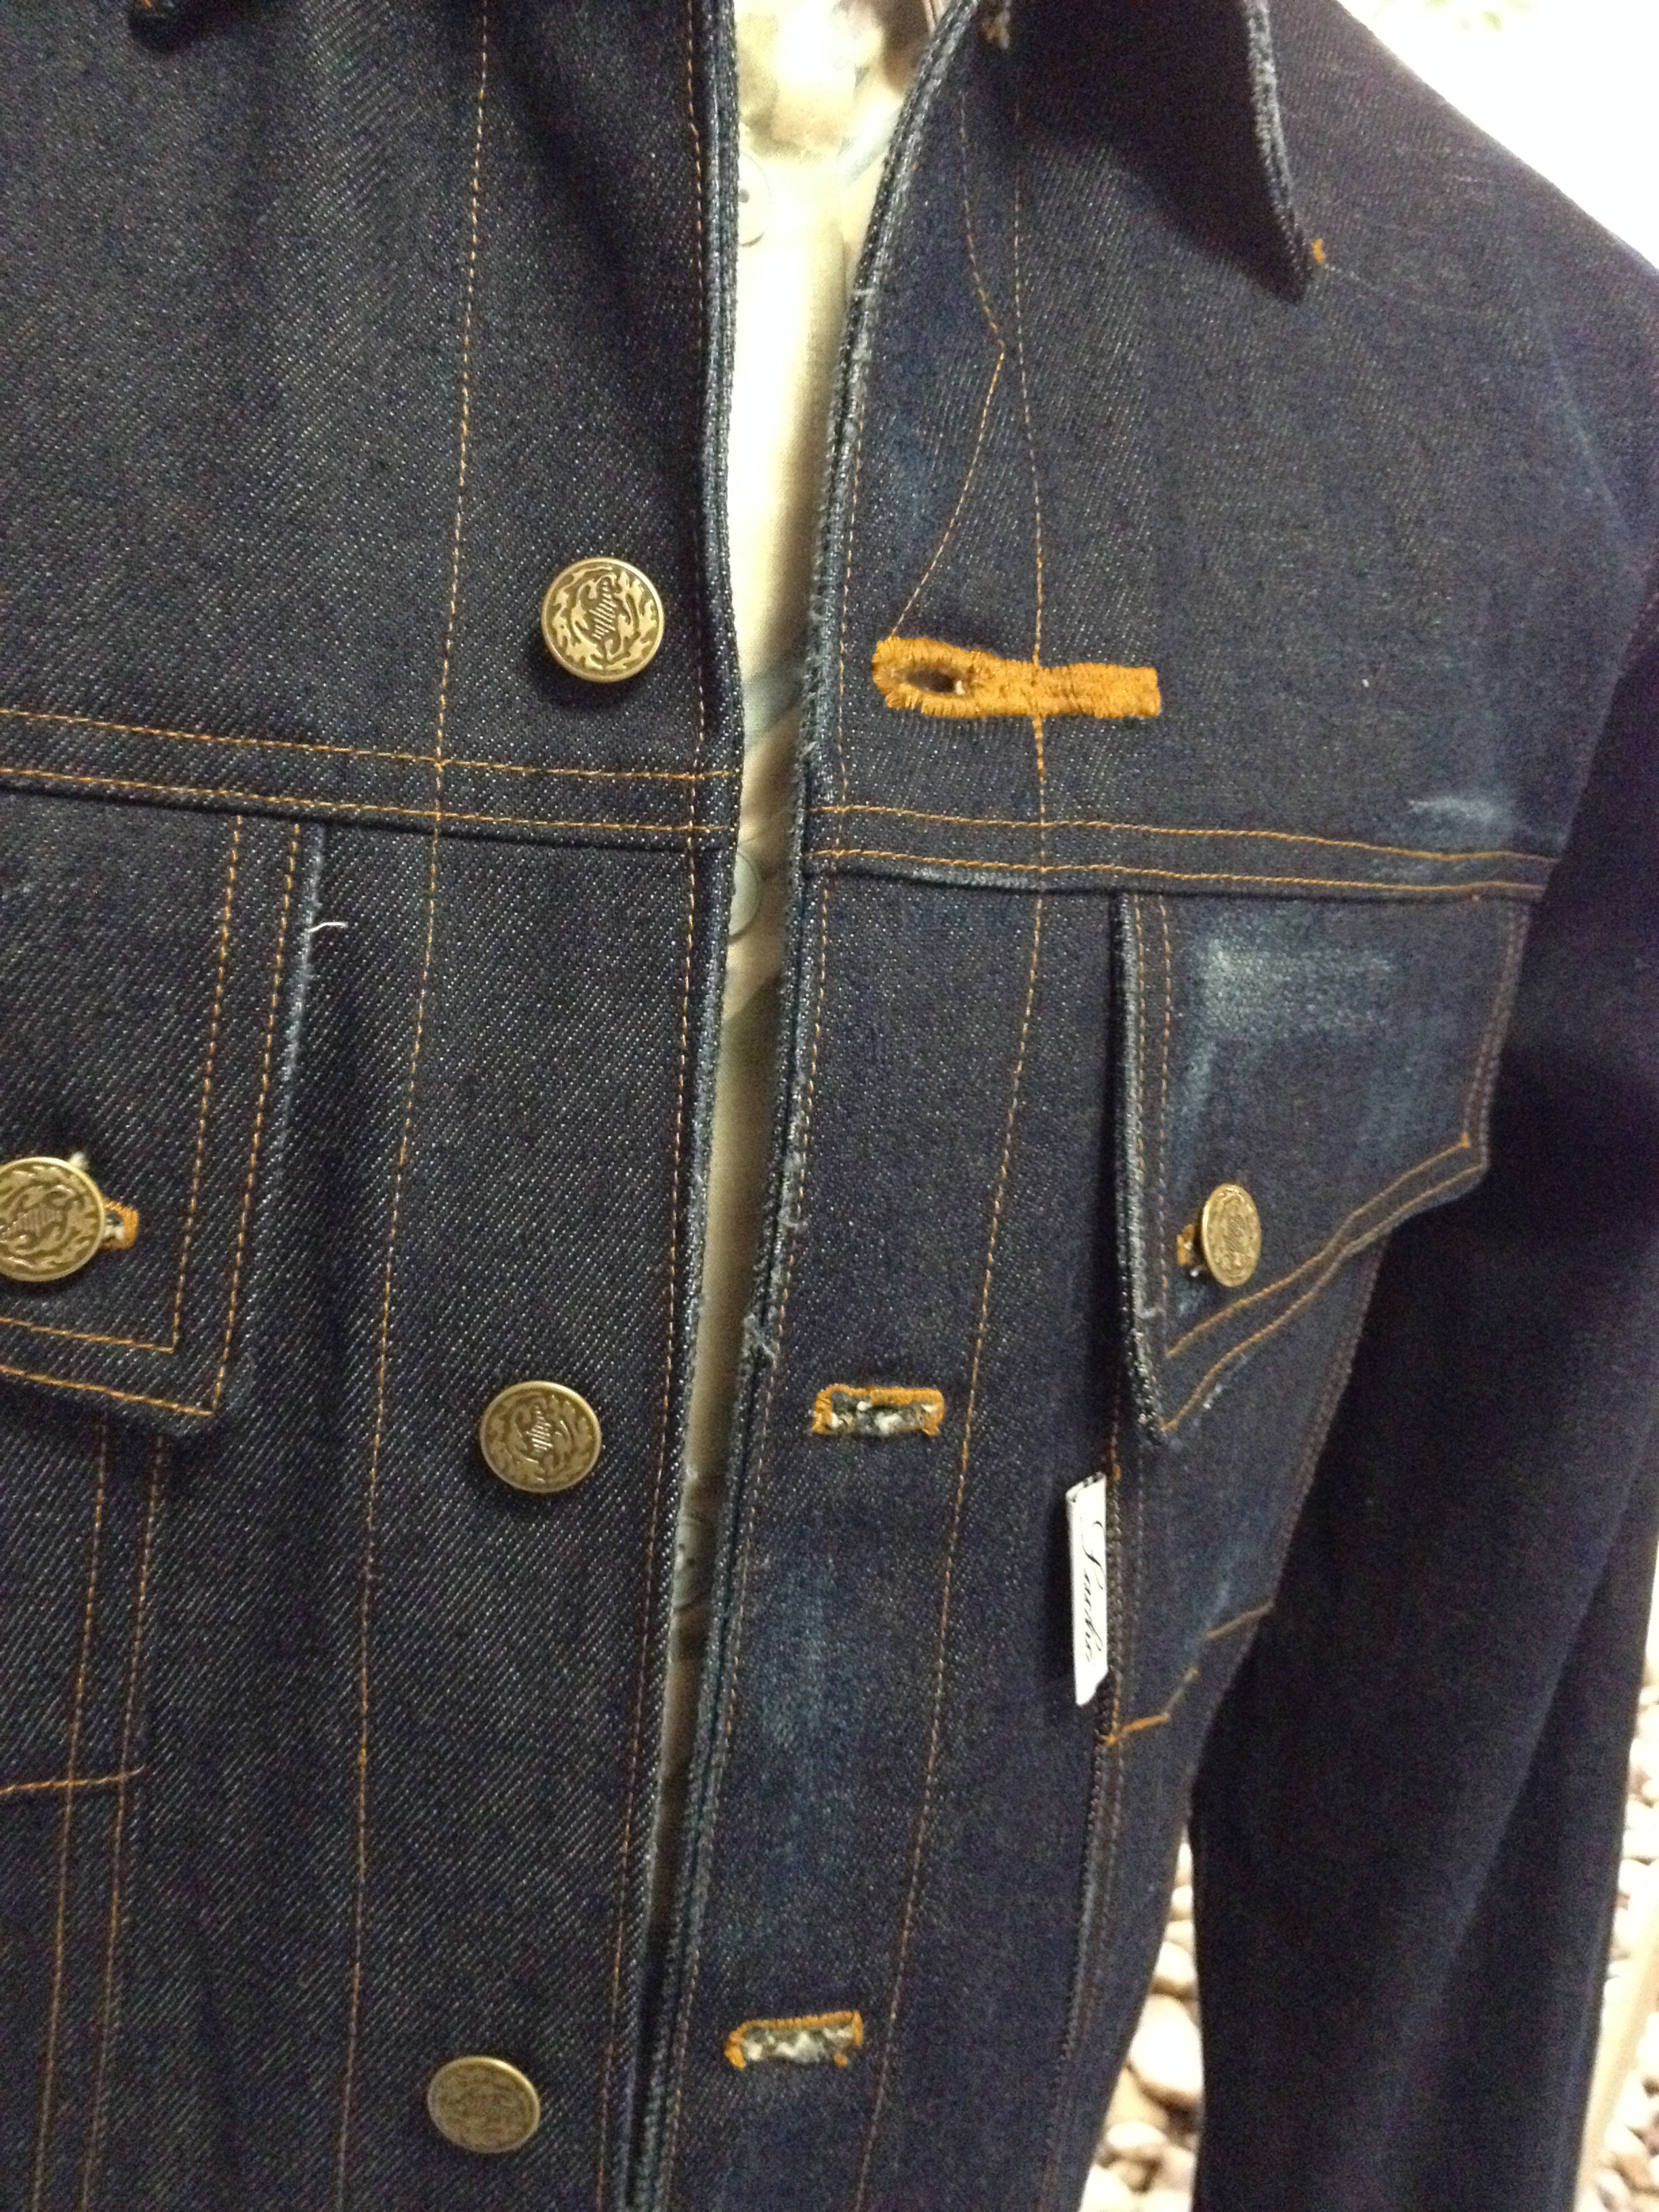 Laché denim jacket